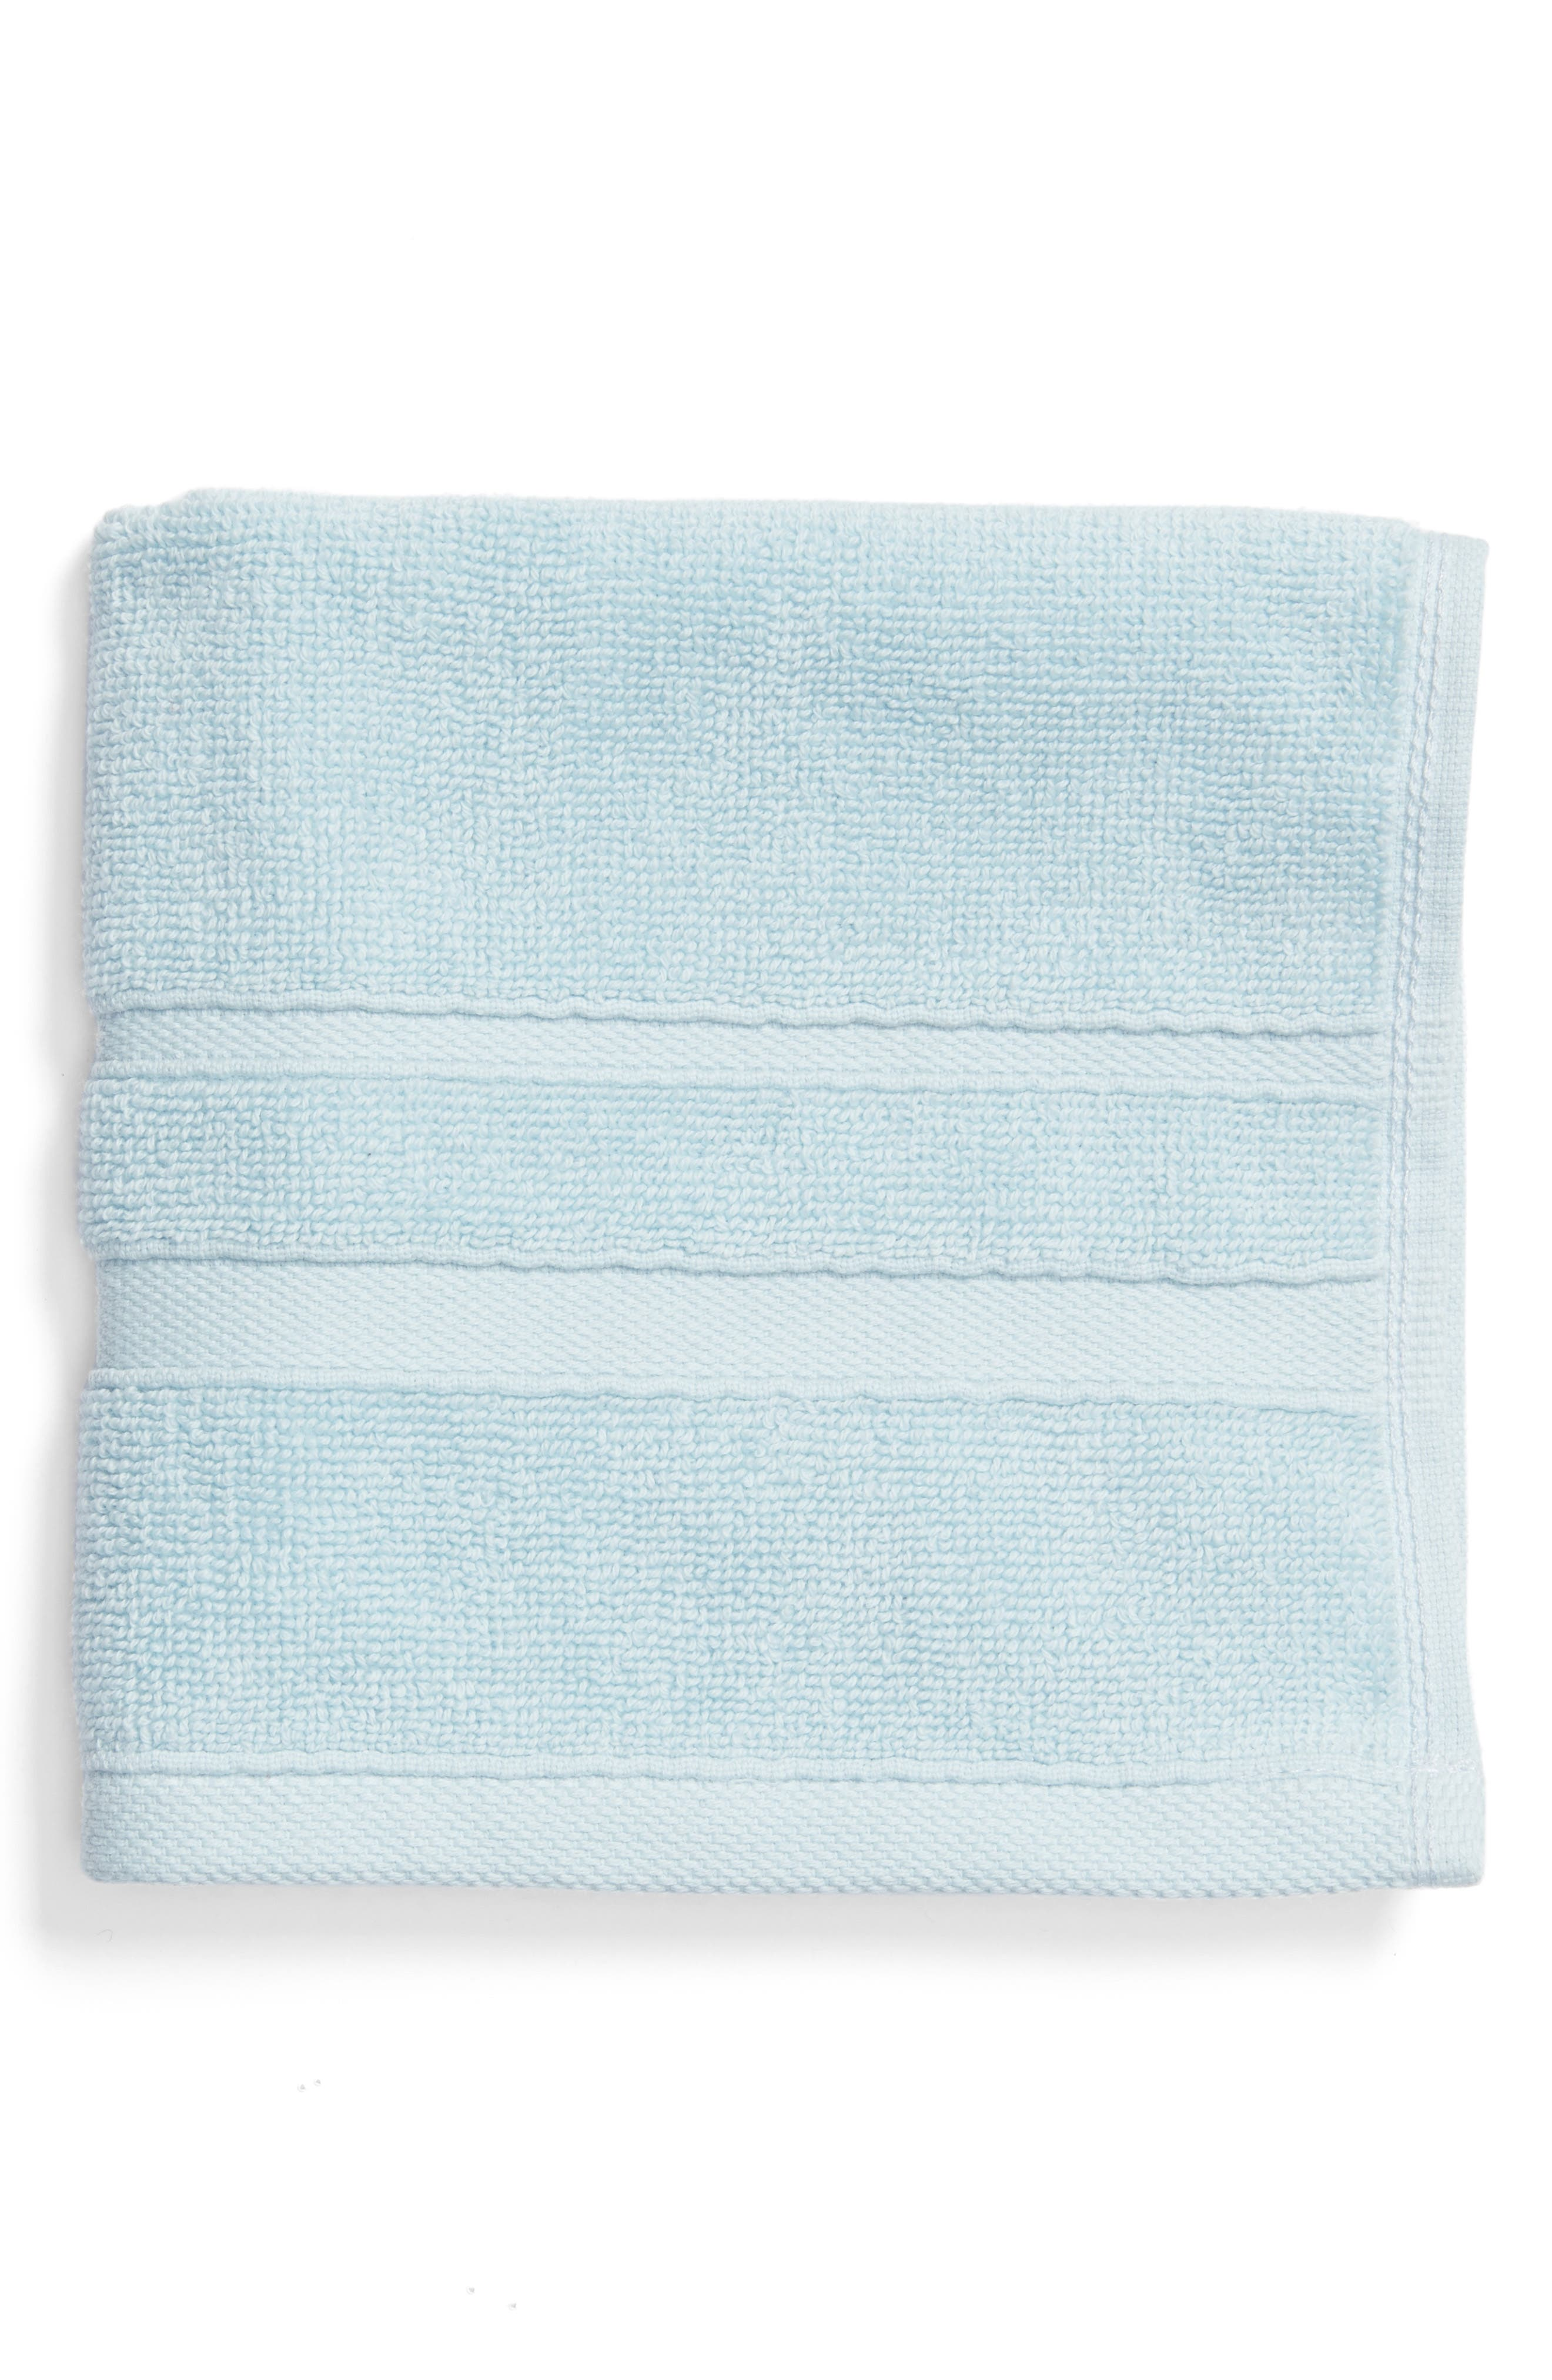 Alternate Image 1 Selected - Waterworks Studio 'Perennial' Combed Turkish Cotton Washcloth (Online Only)